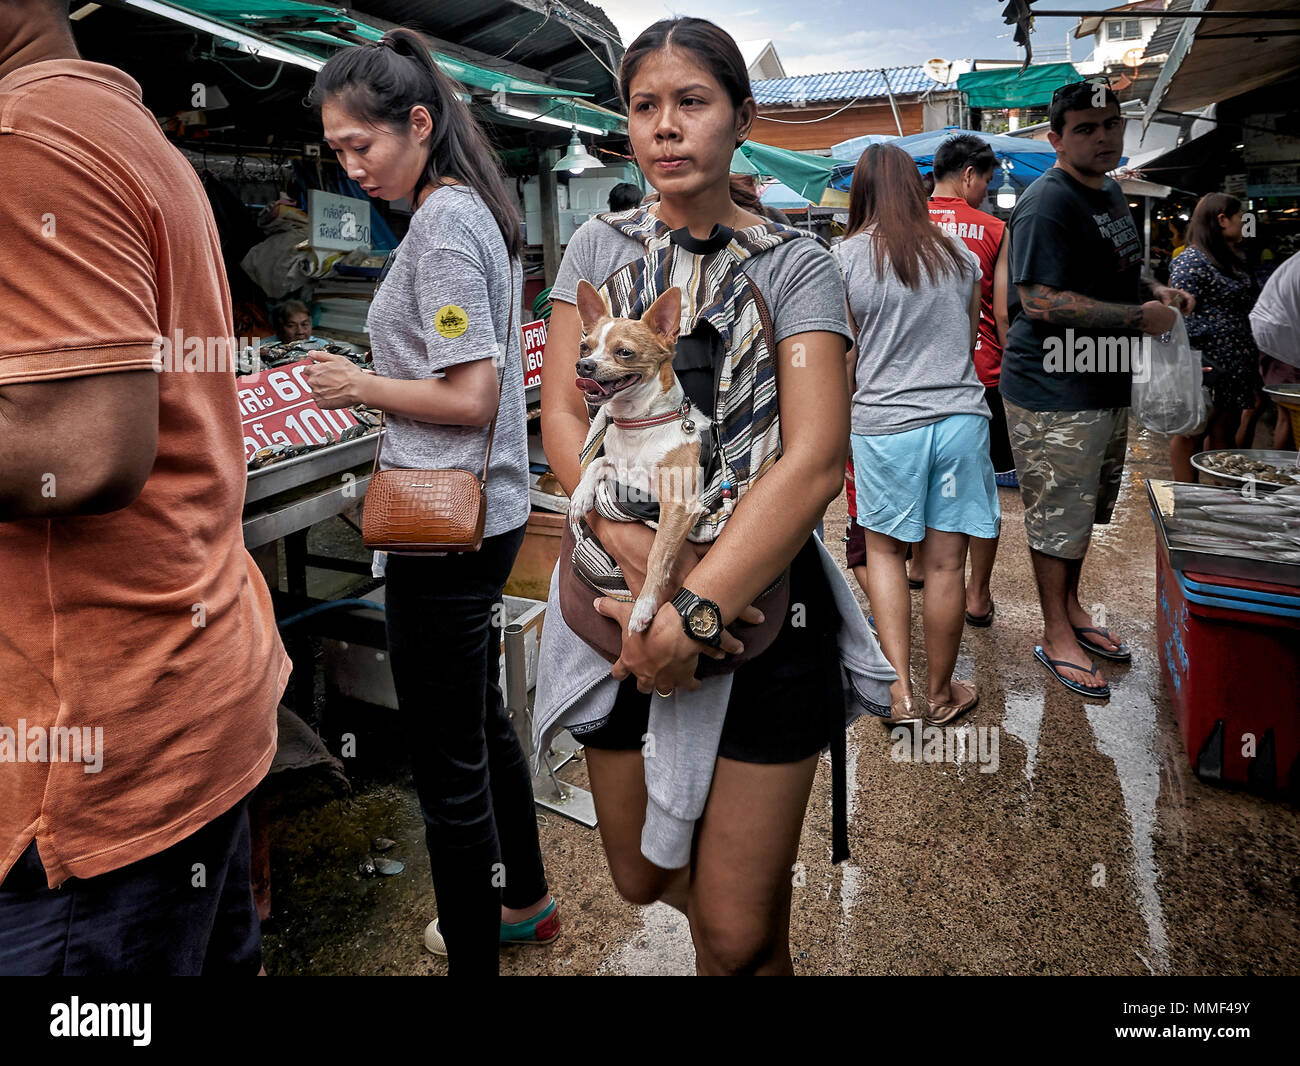 Owner carrying Dog. pet Chihuahua carried by owner through a street market. Thailand Southeast Asia - Stock Image